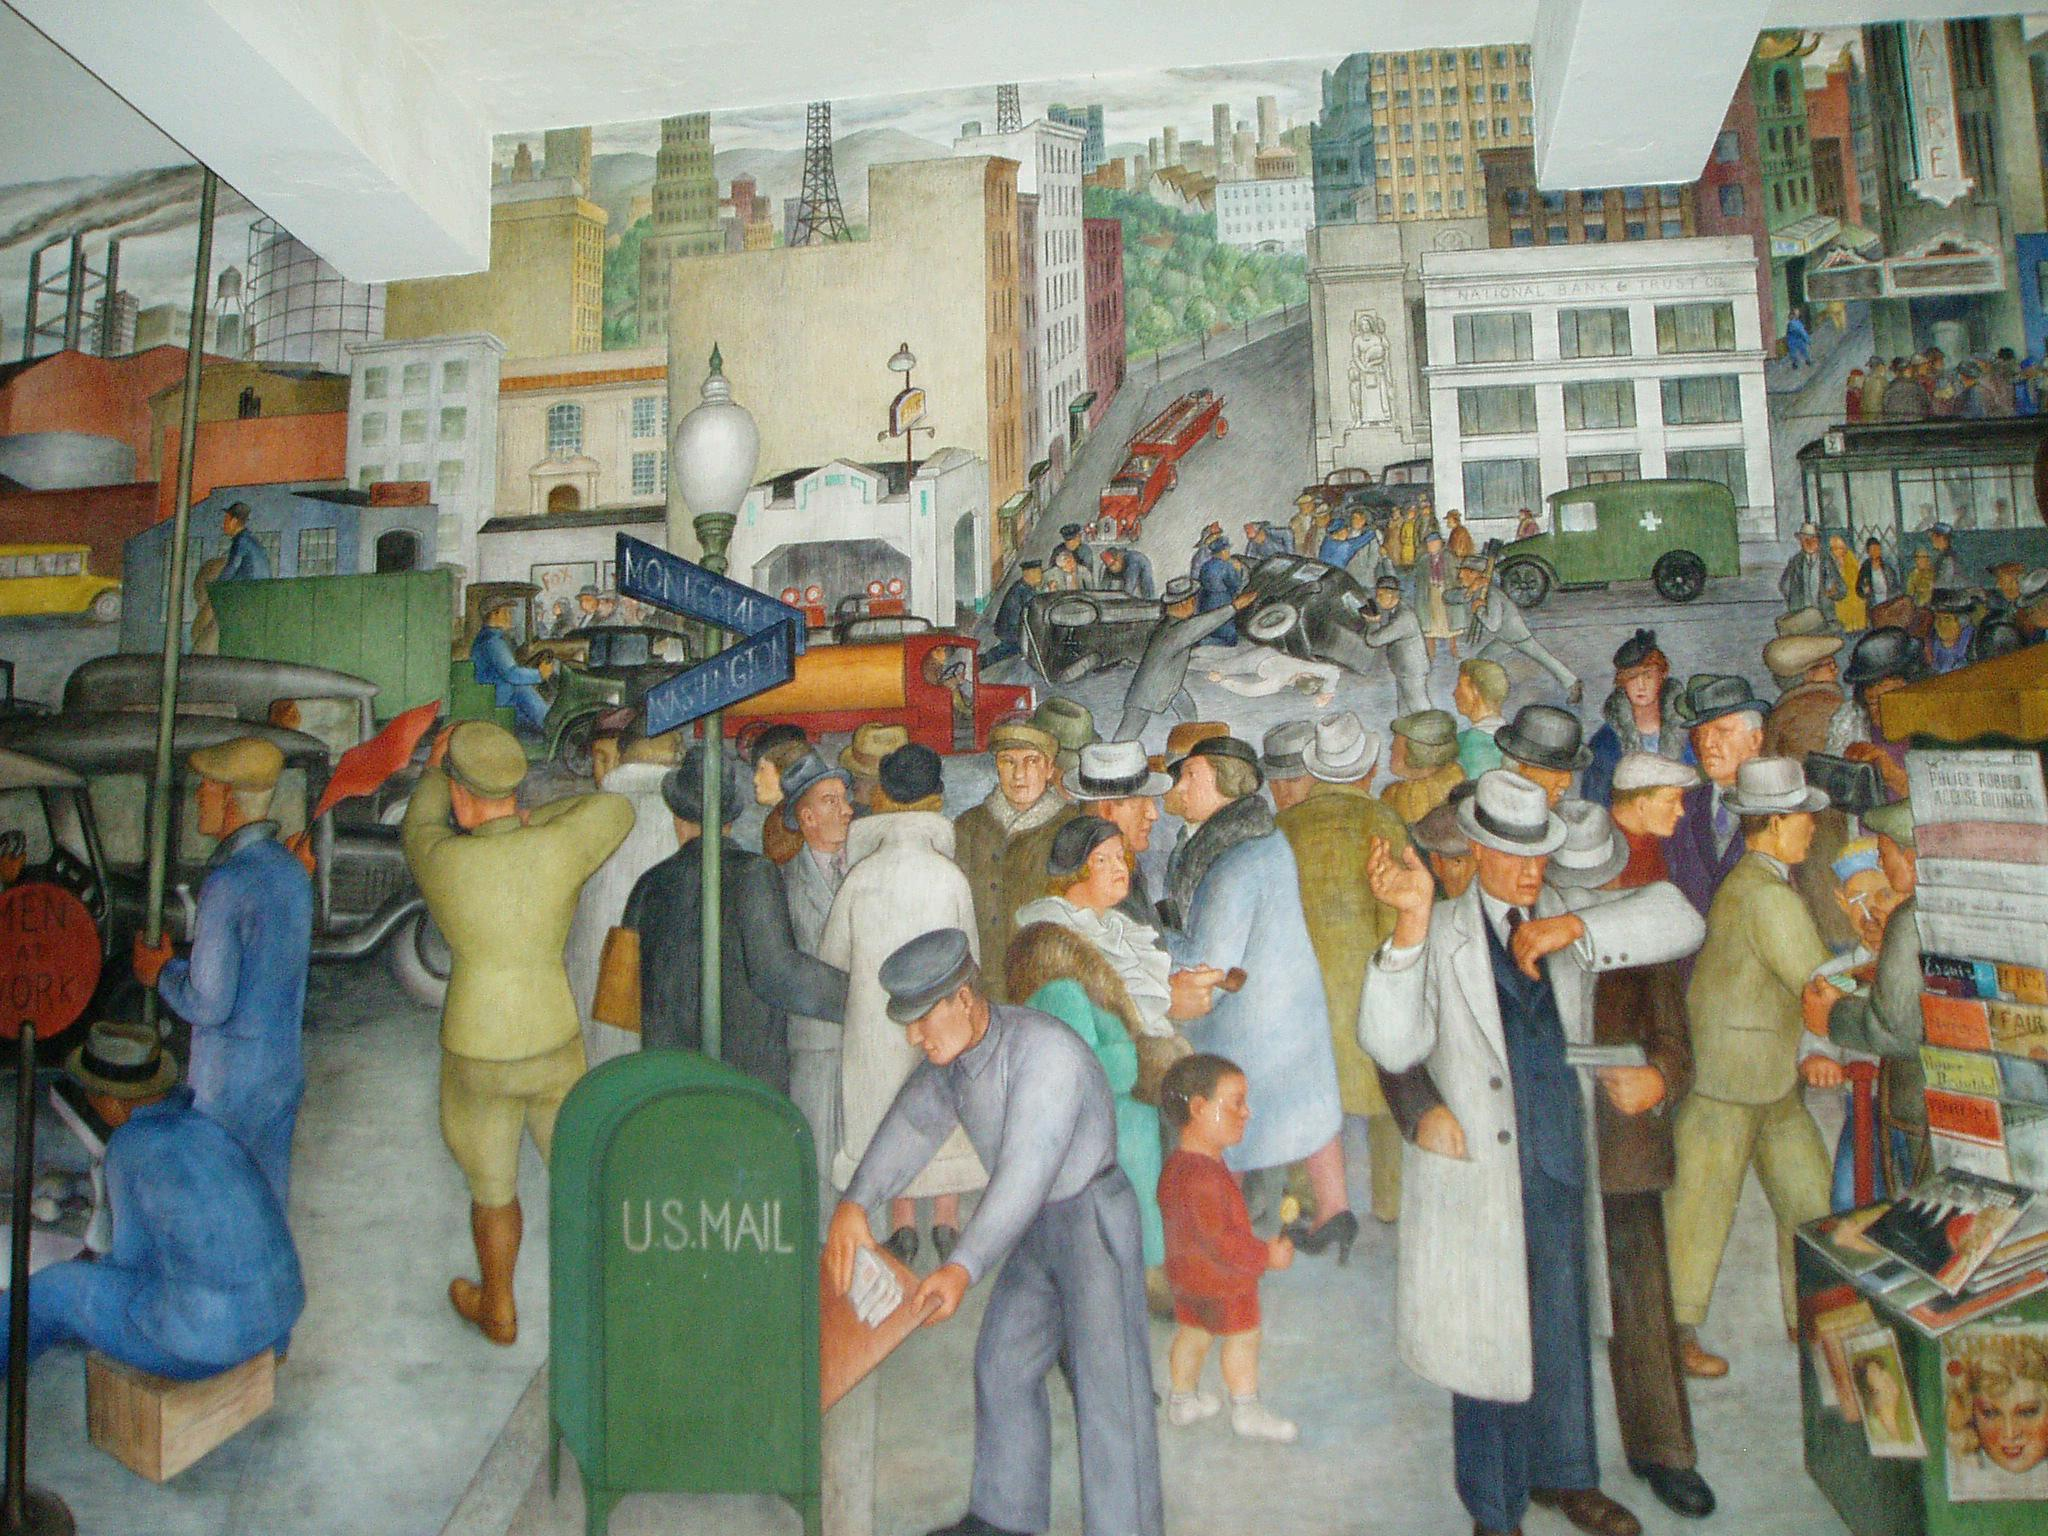 File coit wikimedia commons for Mural meaning